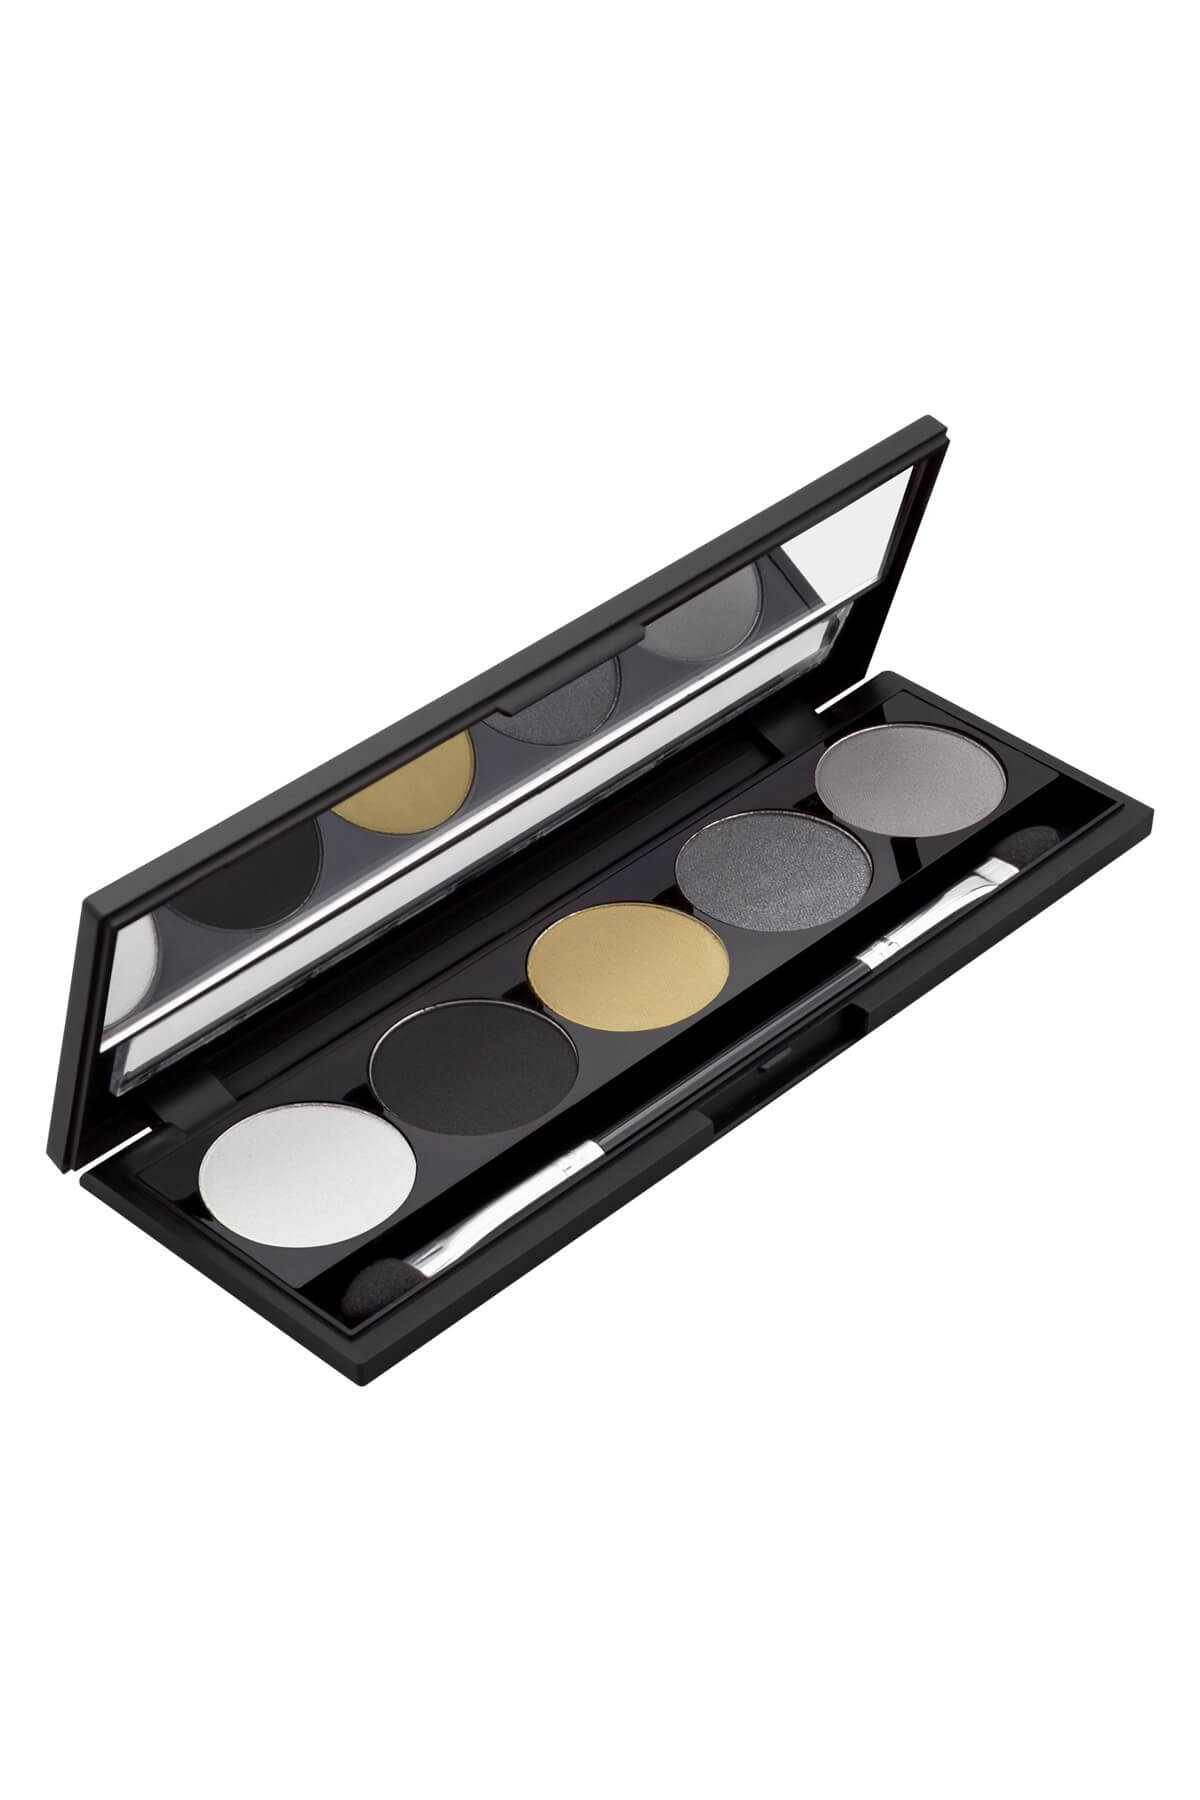 Catherine Arley 5?li Göz Farı Paleti - Palette Eyeshadow 5 Colors 04  8691167489061 1